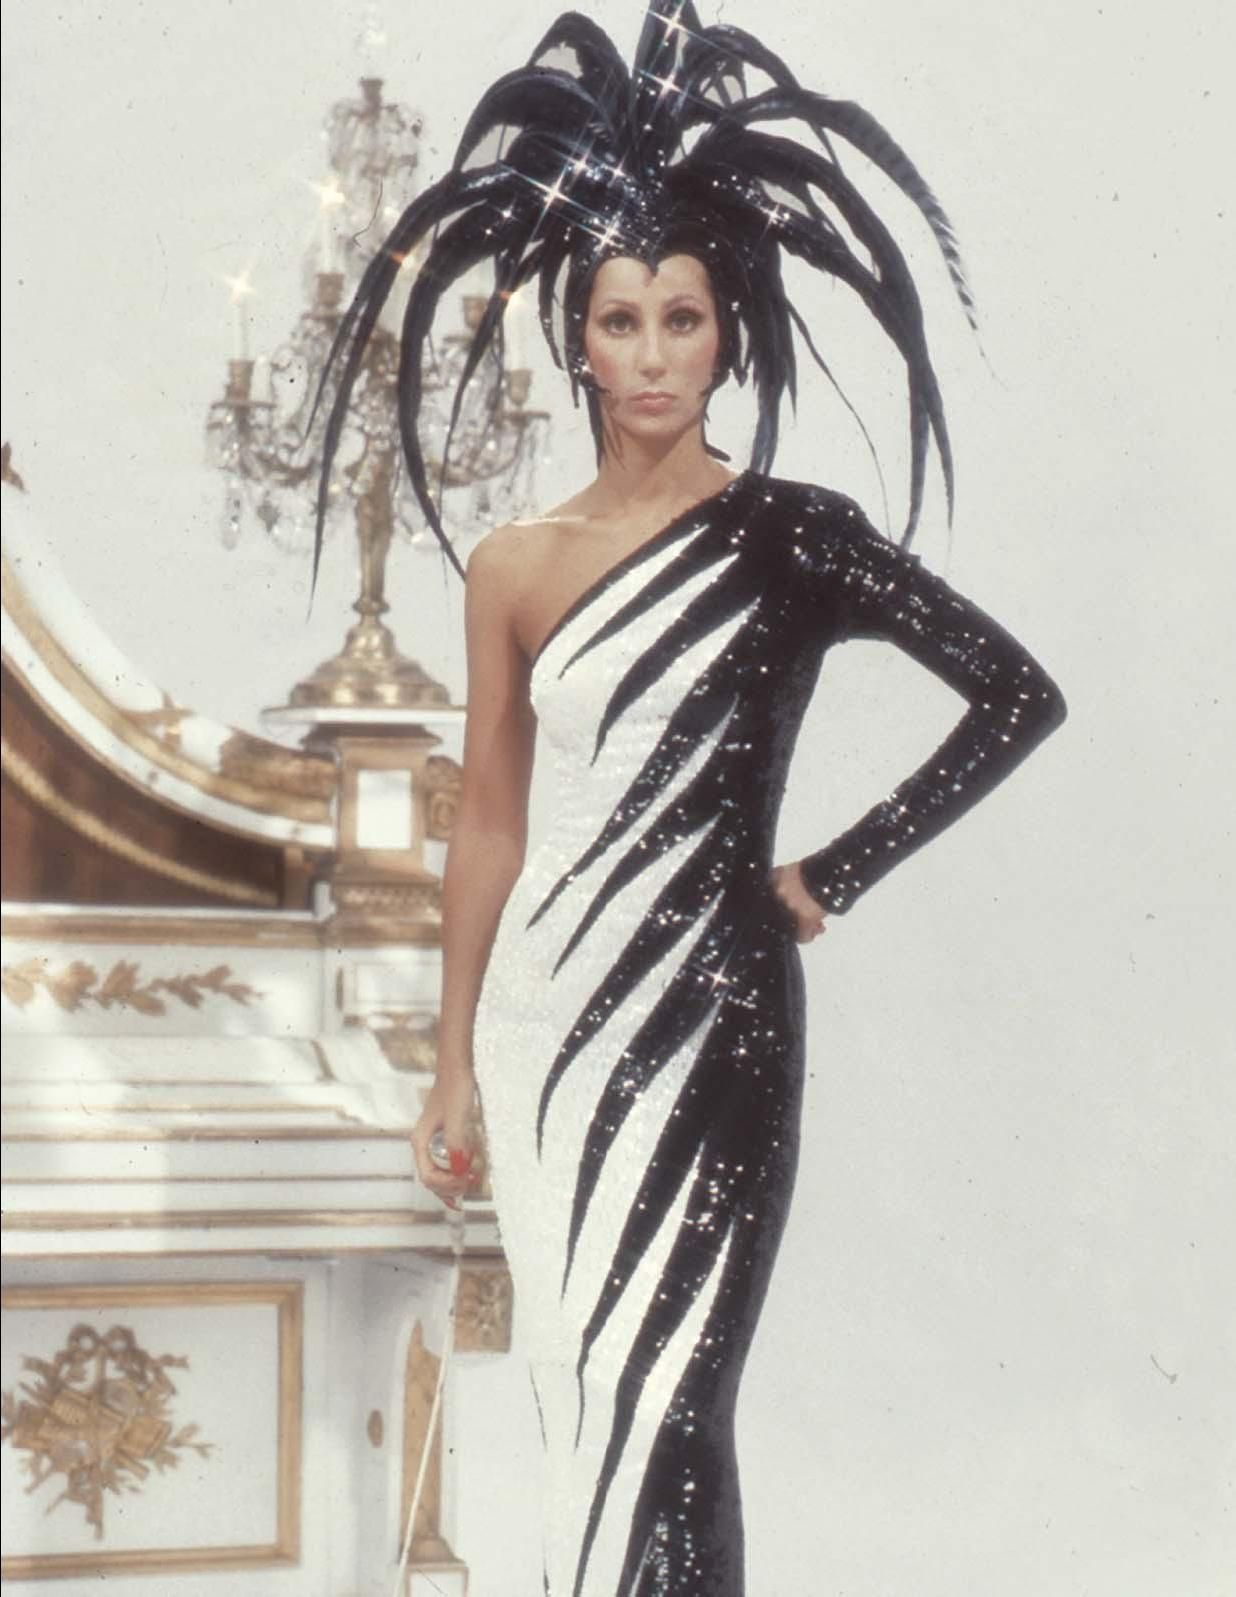 Cher Circa 1970's in Bob Mackie. Nicknamed Electric Feathers for the Mego Cher doll version of the same outfit.